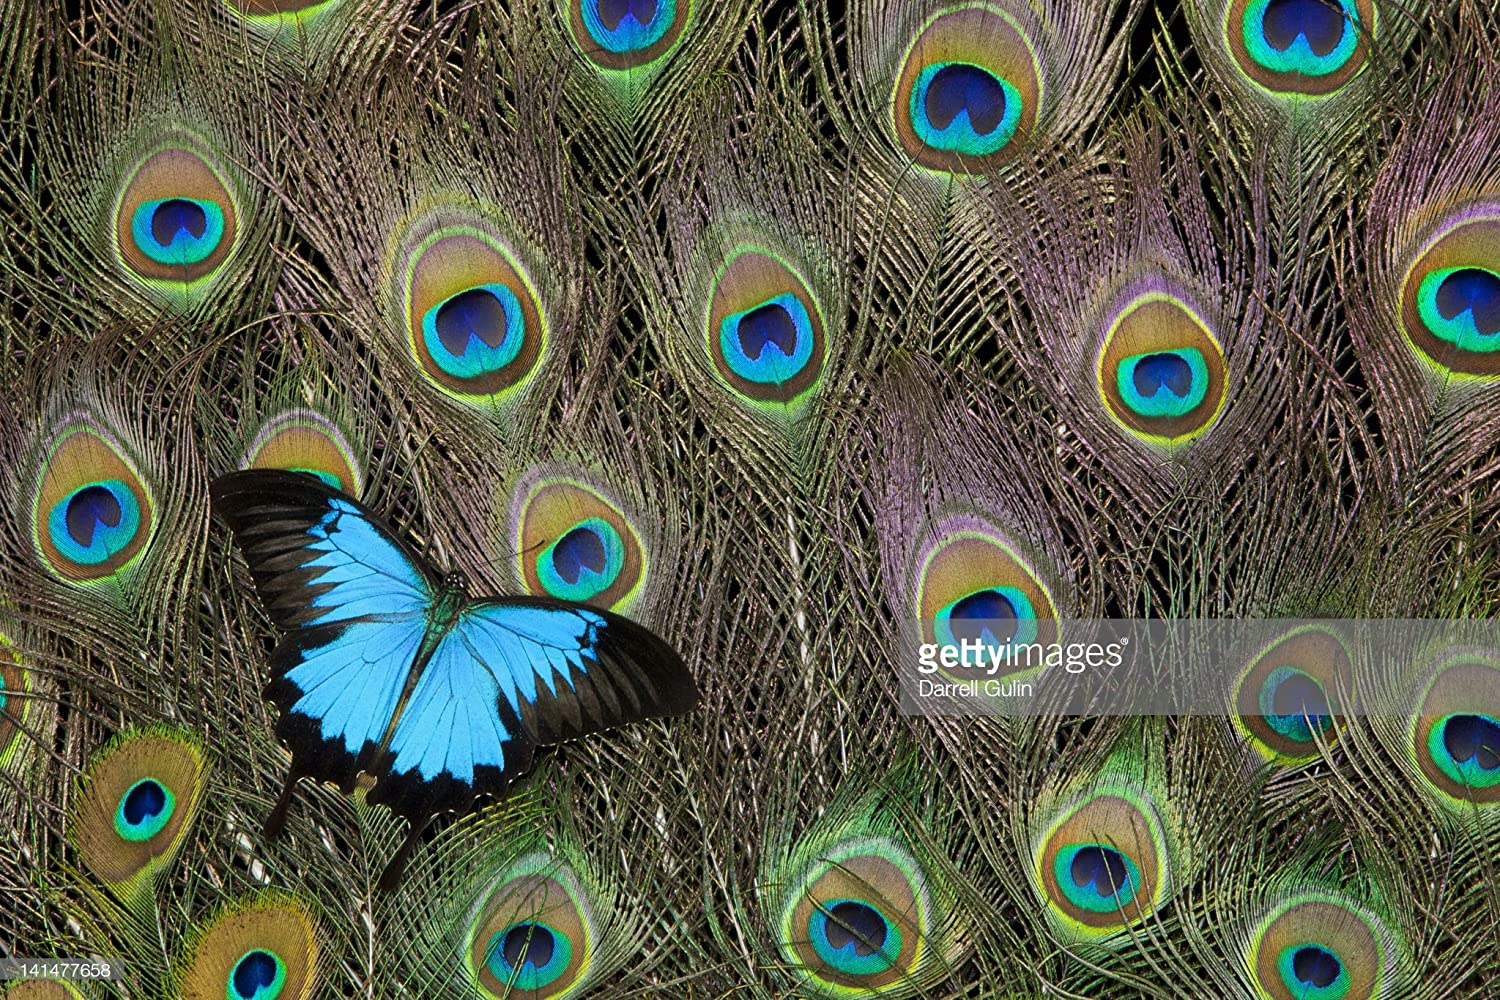 Getty Images Peacock Feathers & Blue Butterfly 写真 48x32 141477658 B07GZ3HTPS 48x32|アクリル  48x32